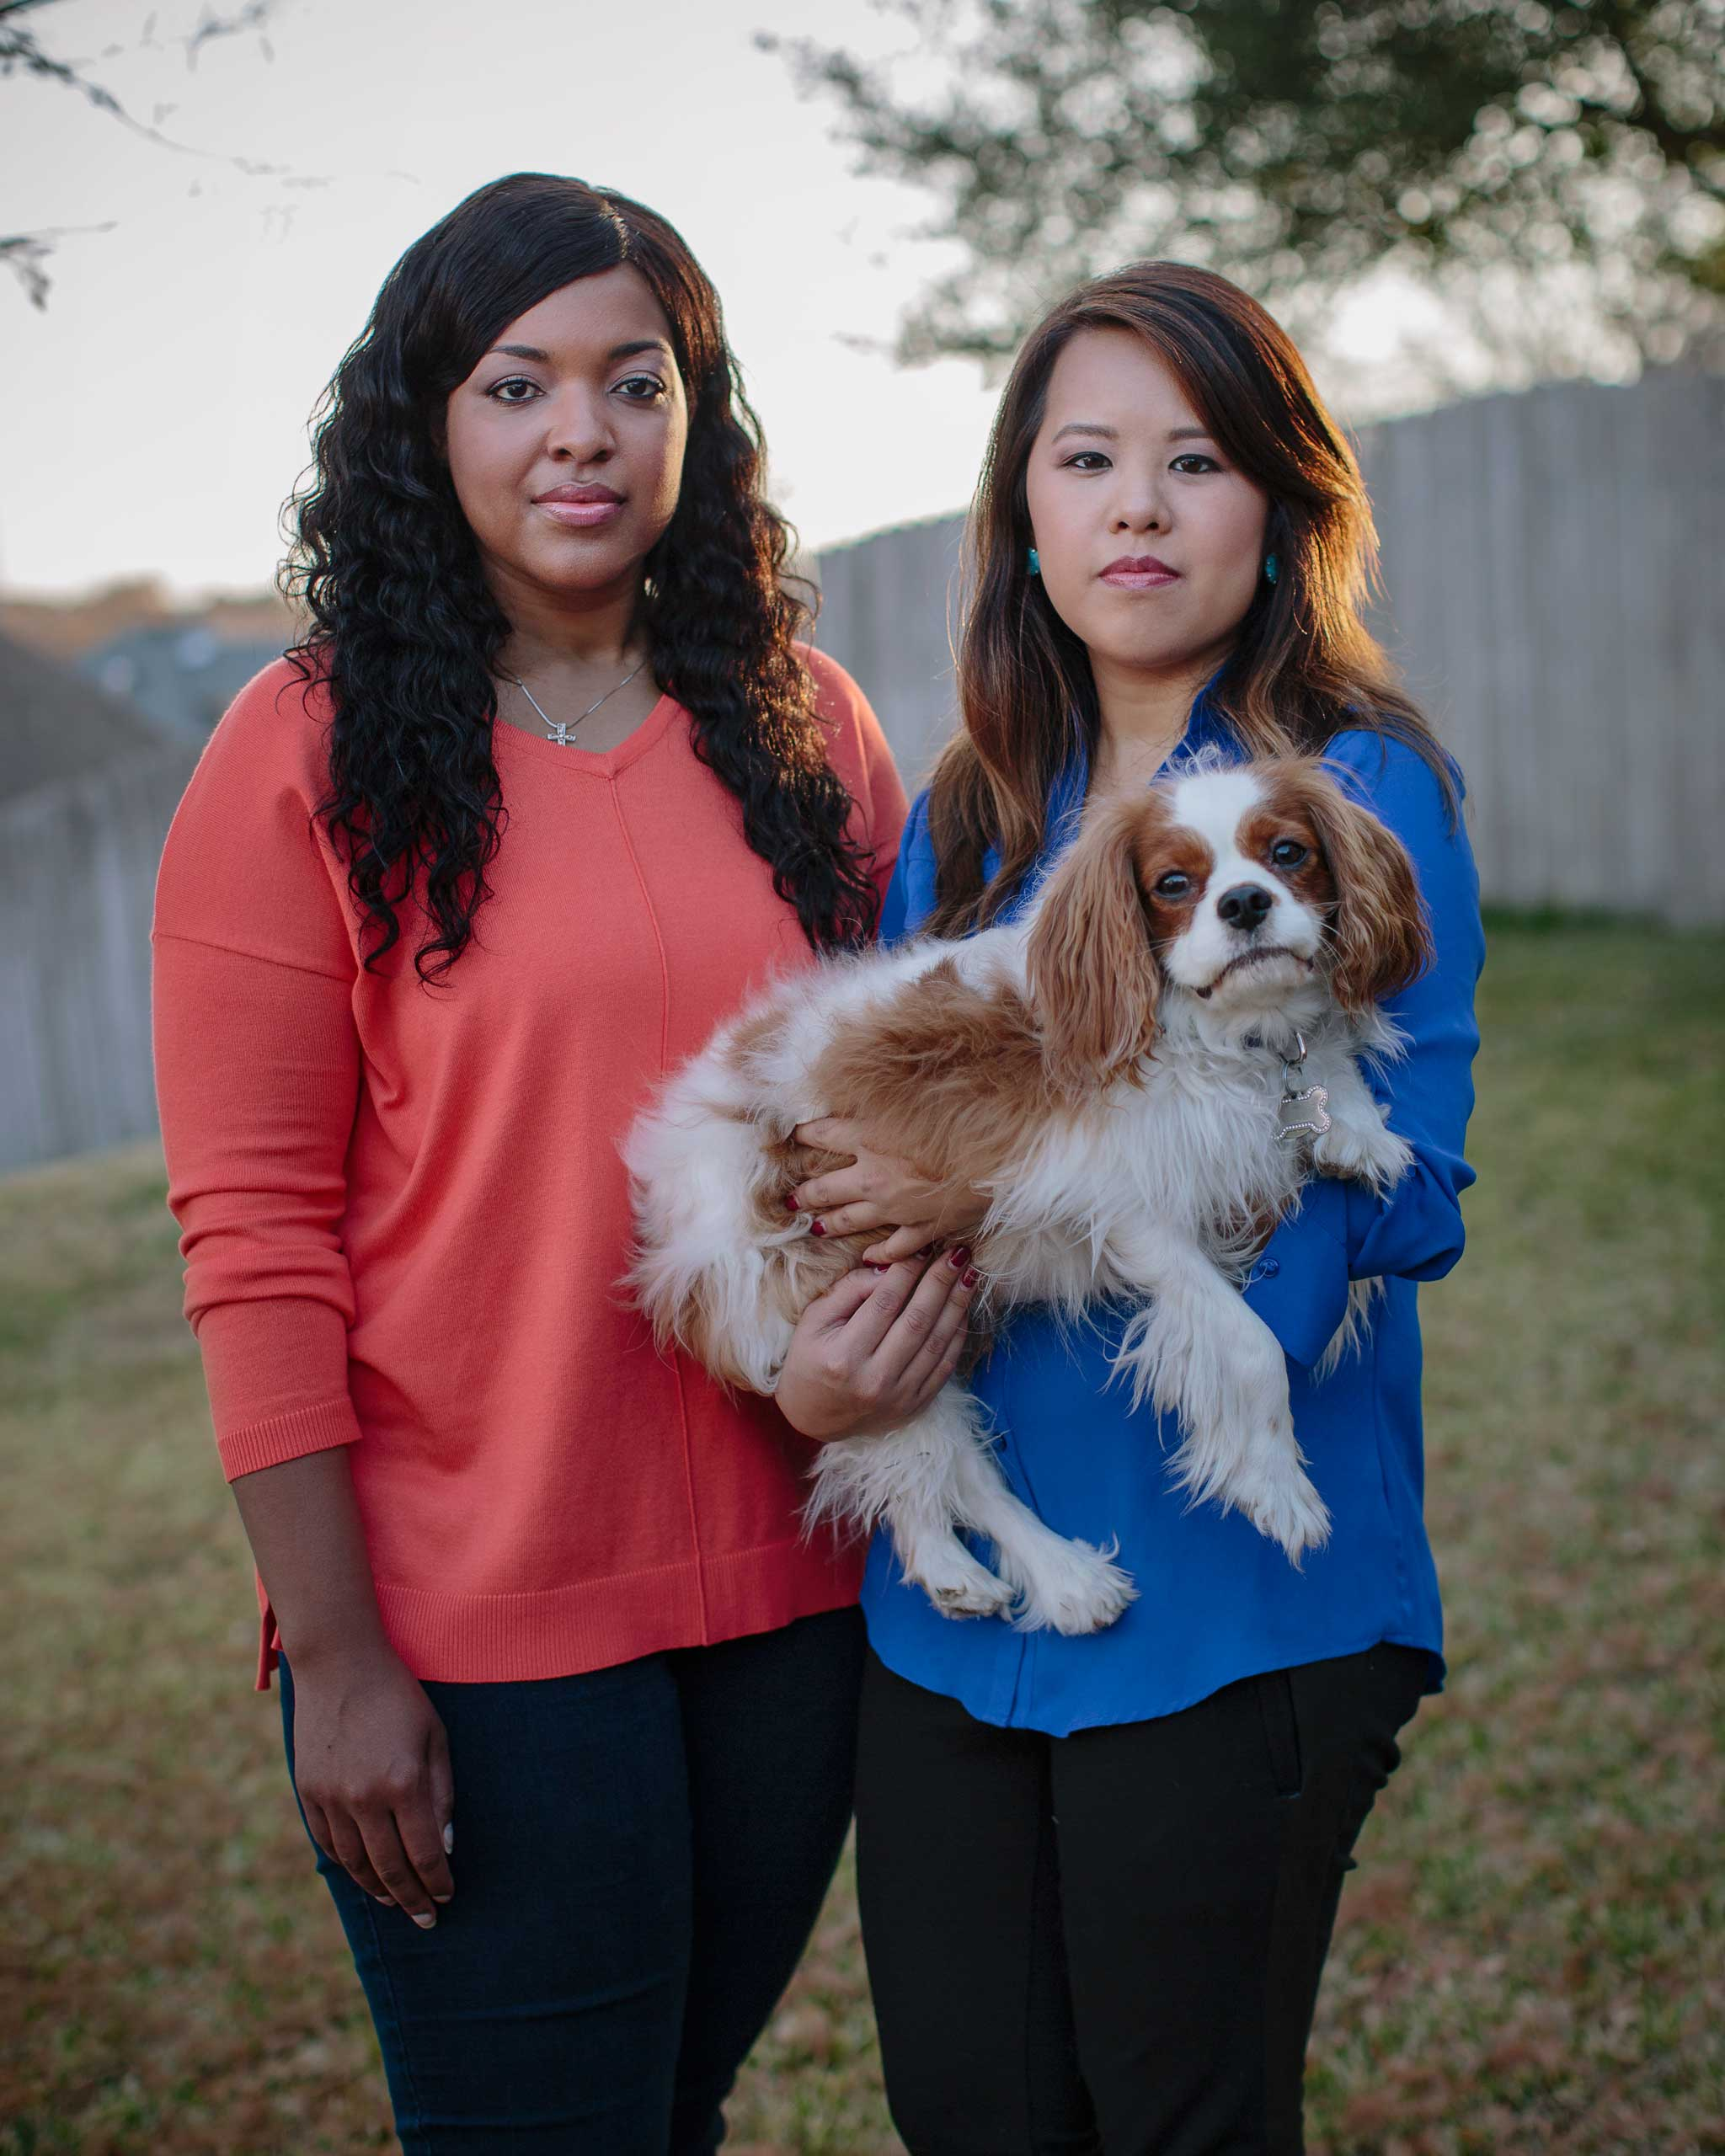 Amber Vinson and Nina Pham, nurses at Texas Health Presbyterian Hospital in Dallas. They contracted Ebola while treating patient Thomas Eric Duncan. Dec. 5, 2014